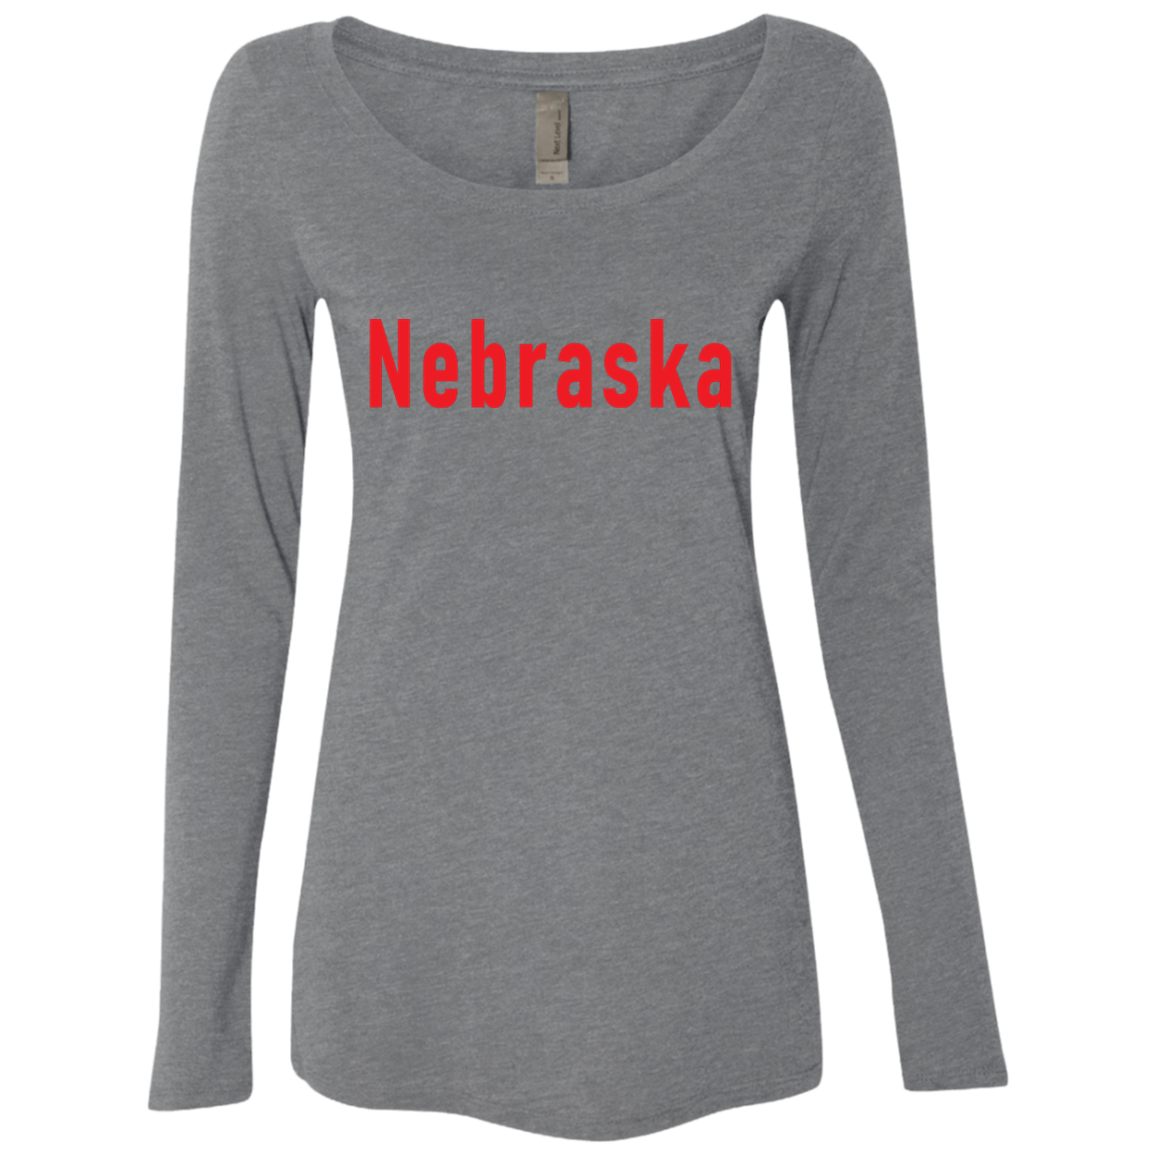 Nebraska Women's Long Sleeve Tee